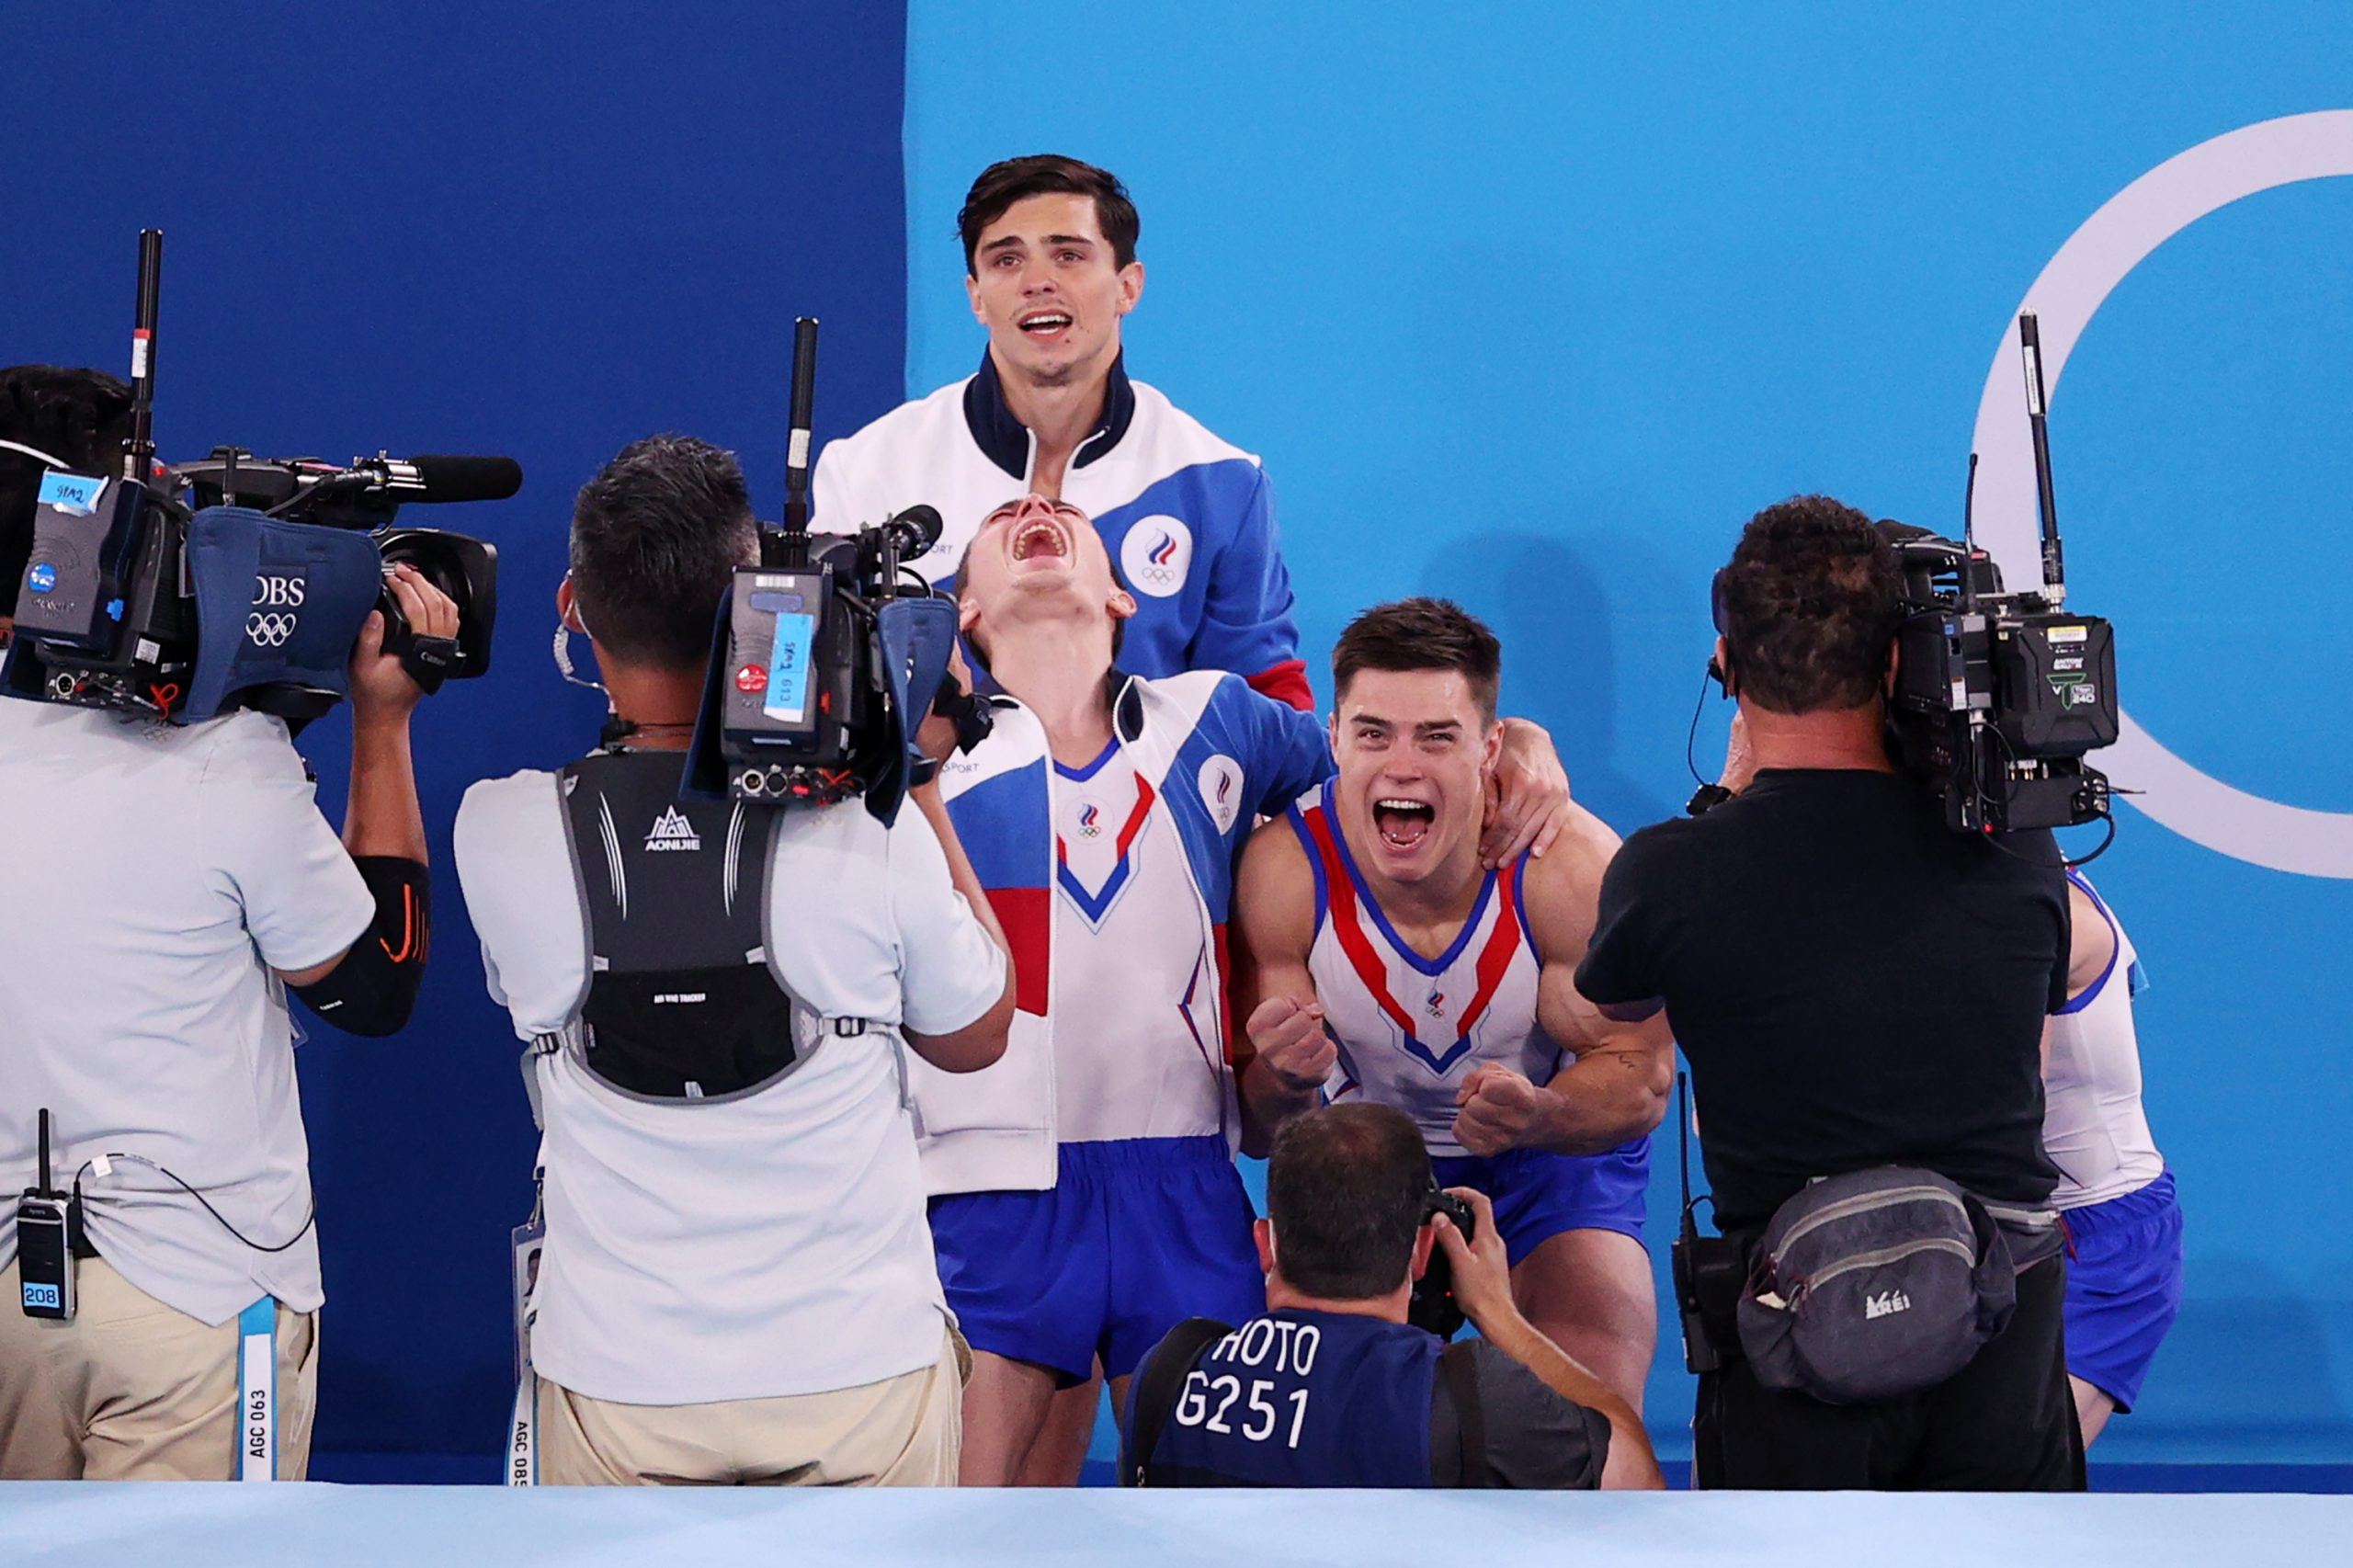 The Russian Olympics Committee clinches the gold in men's gymnastics